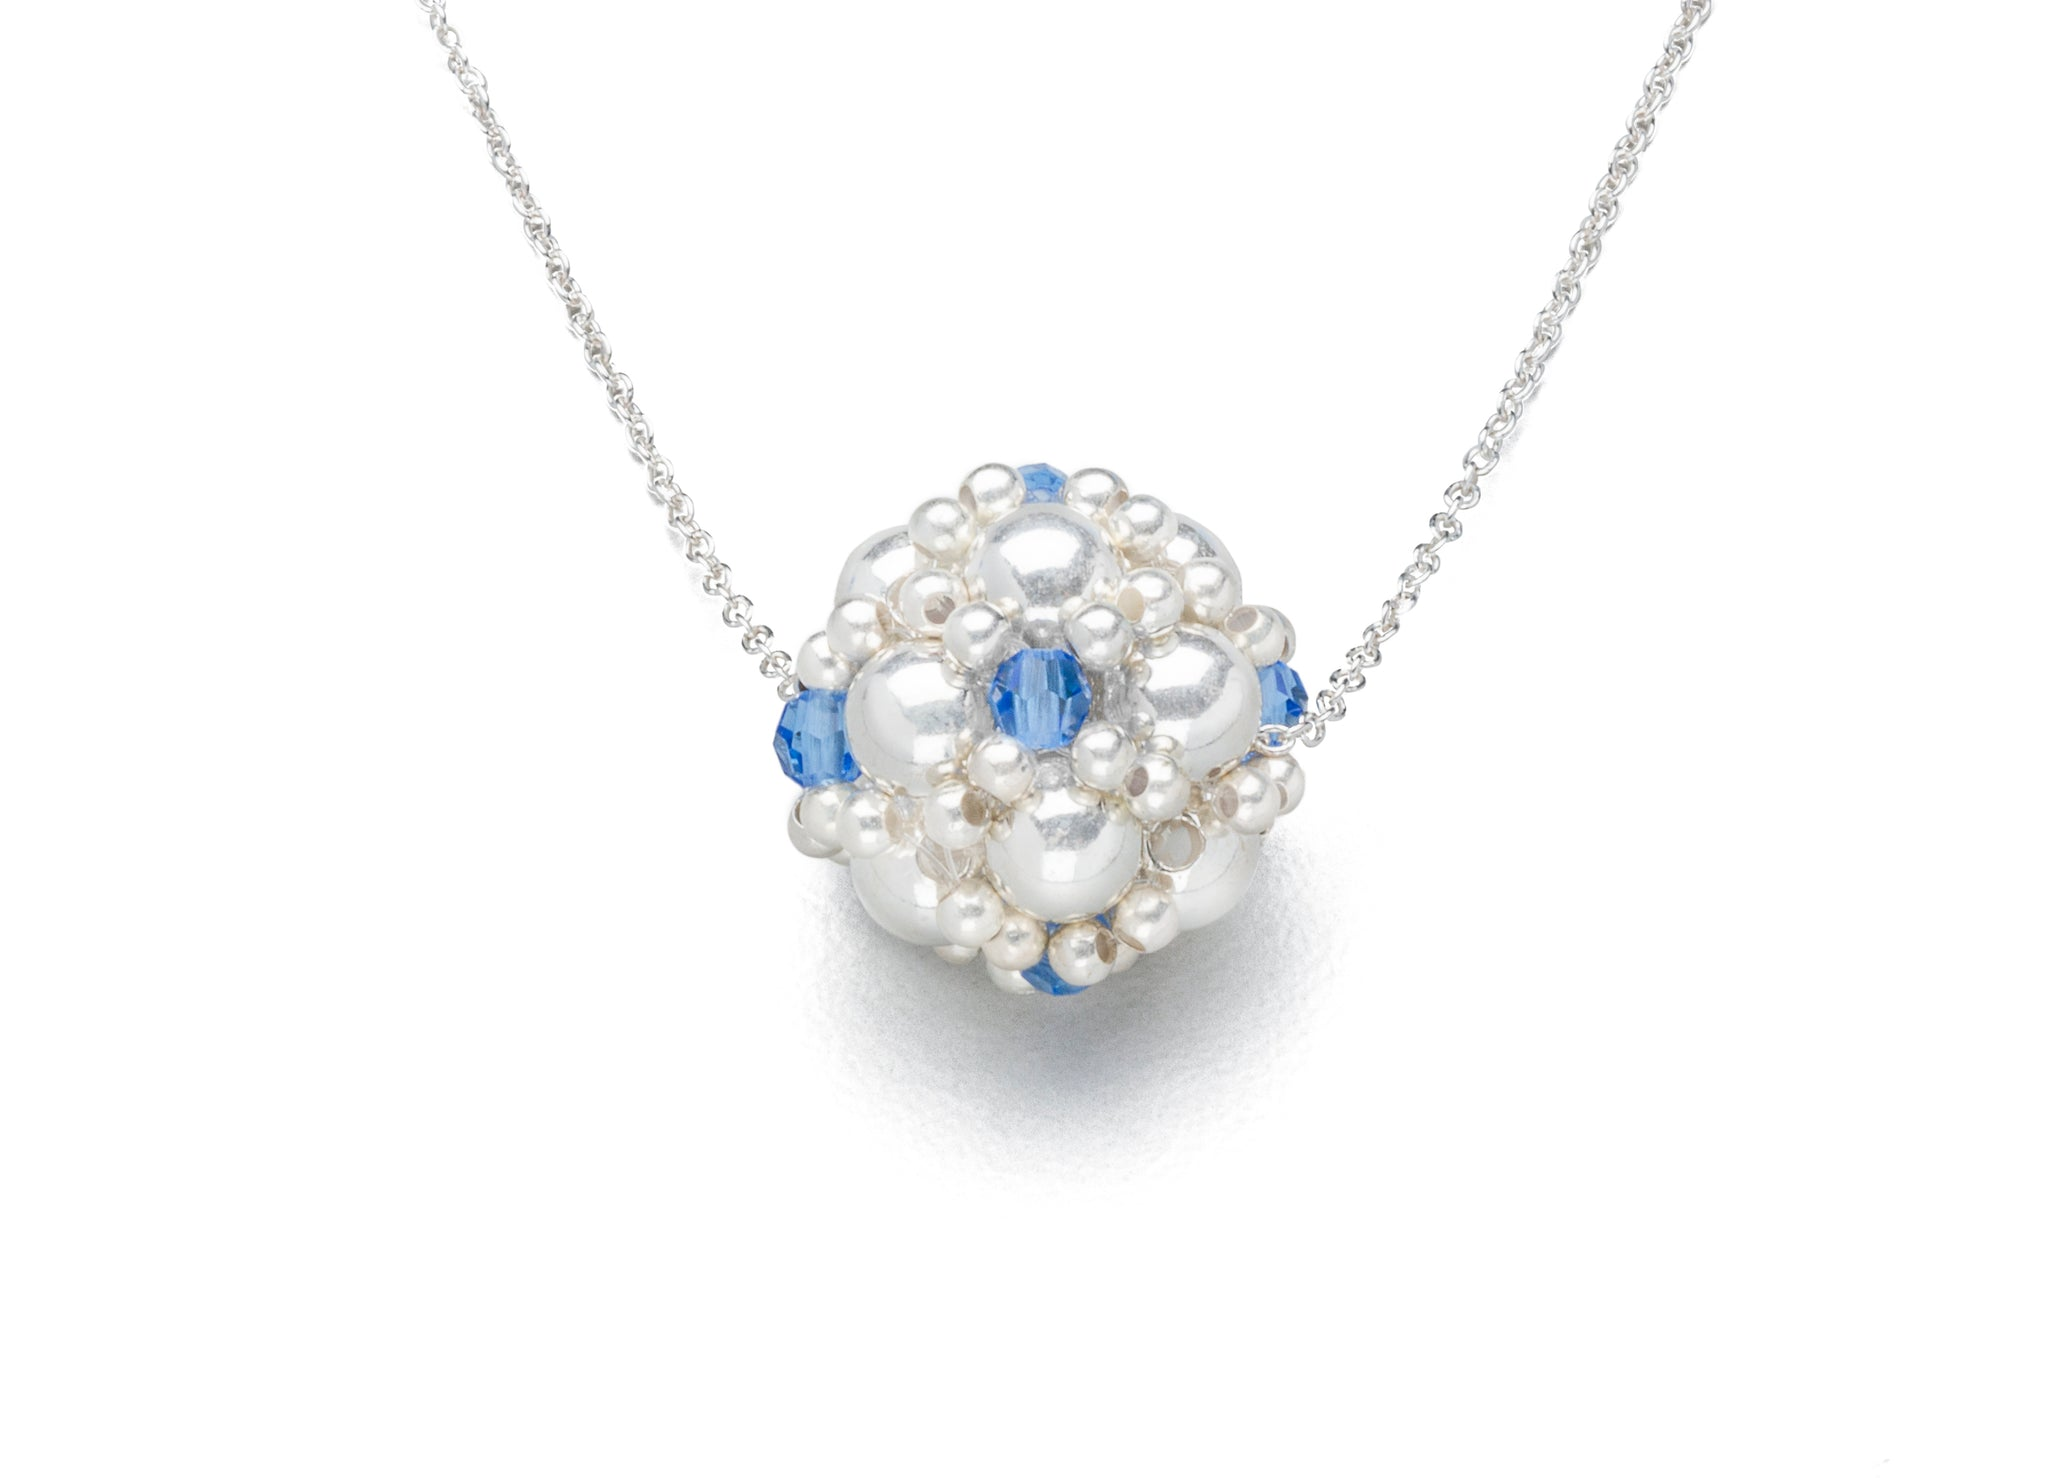 385aa268b7 Enhanced Silver Ball Necklaces, (Click to View All) - Adler Grier